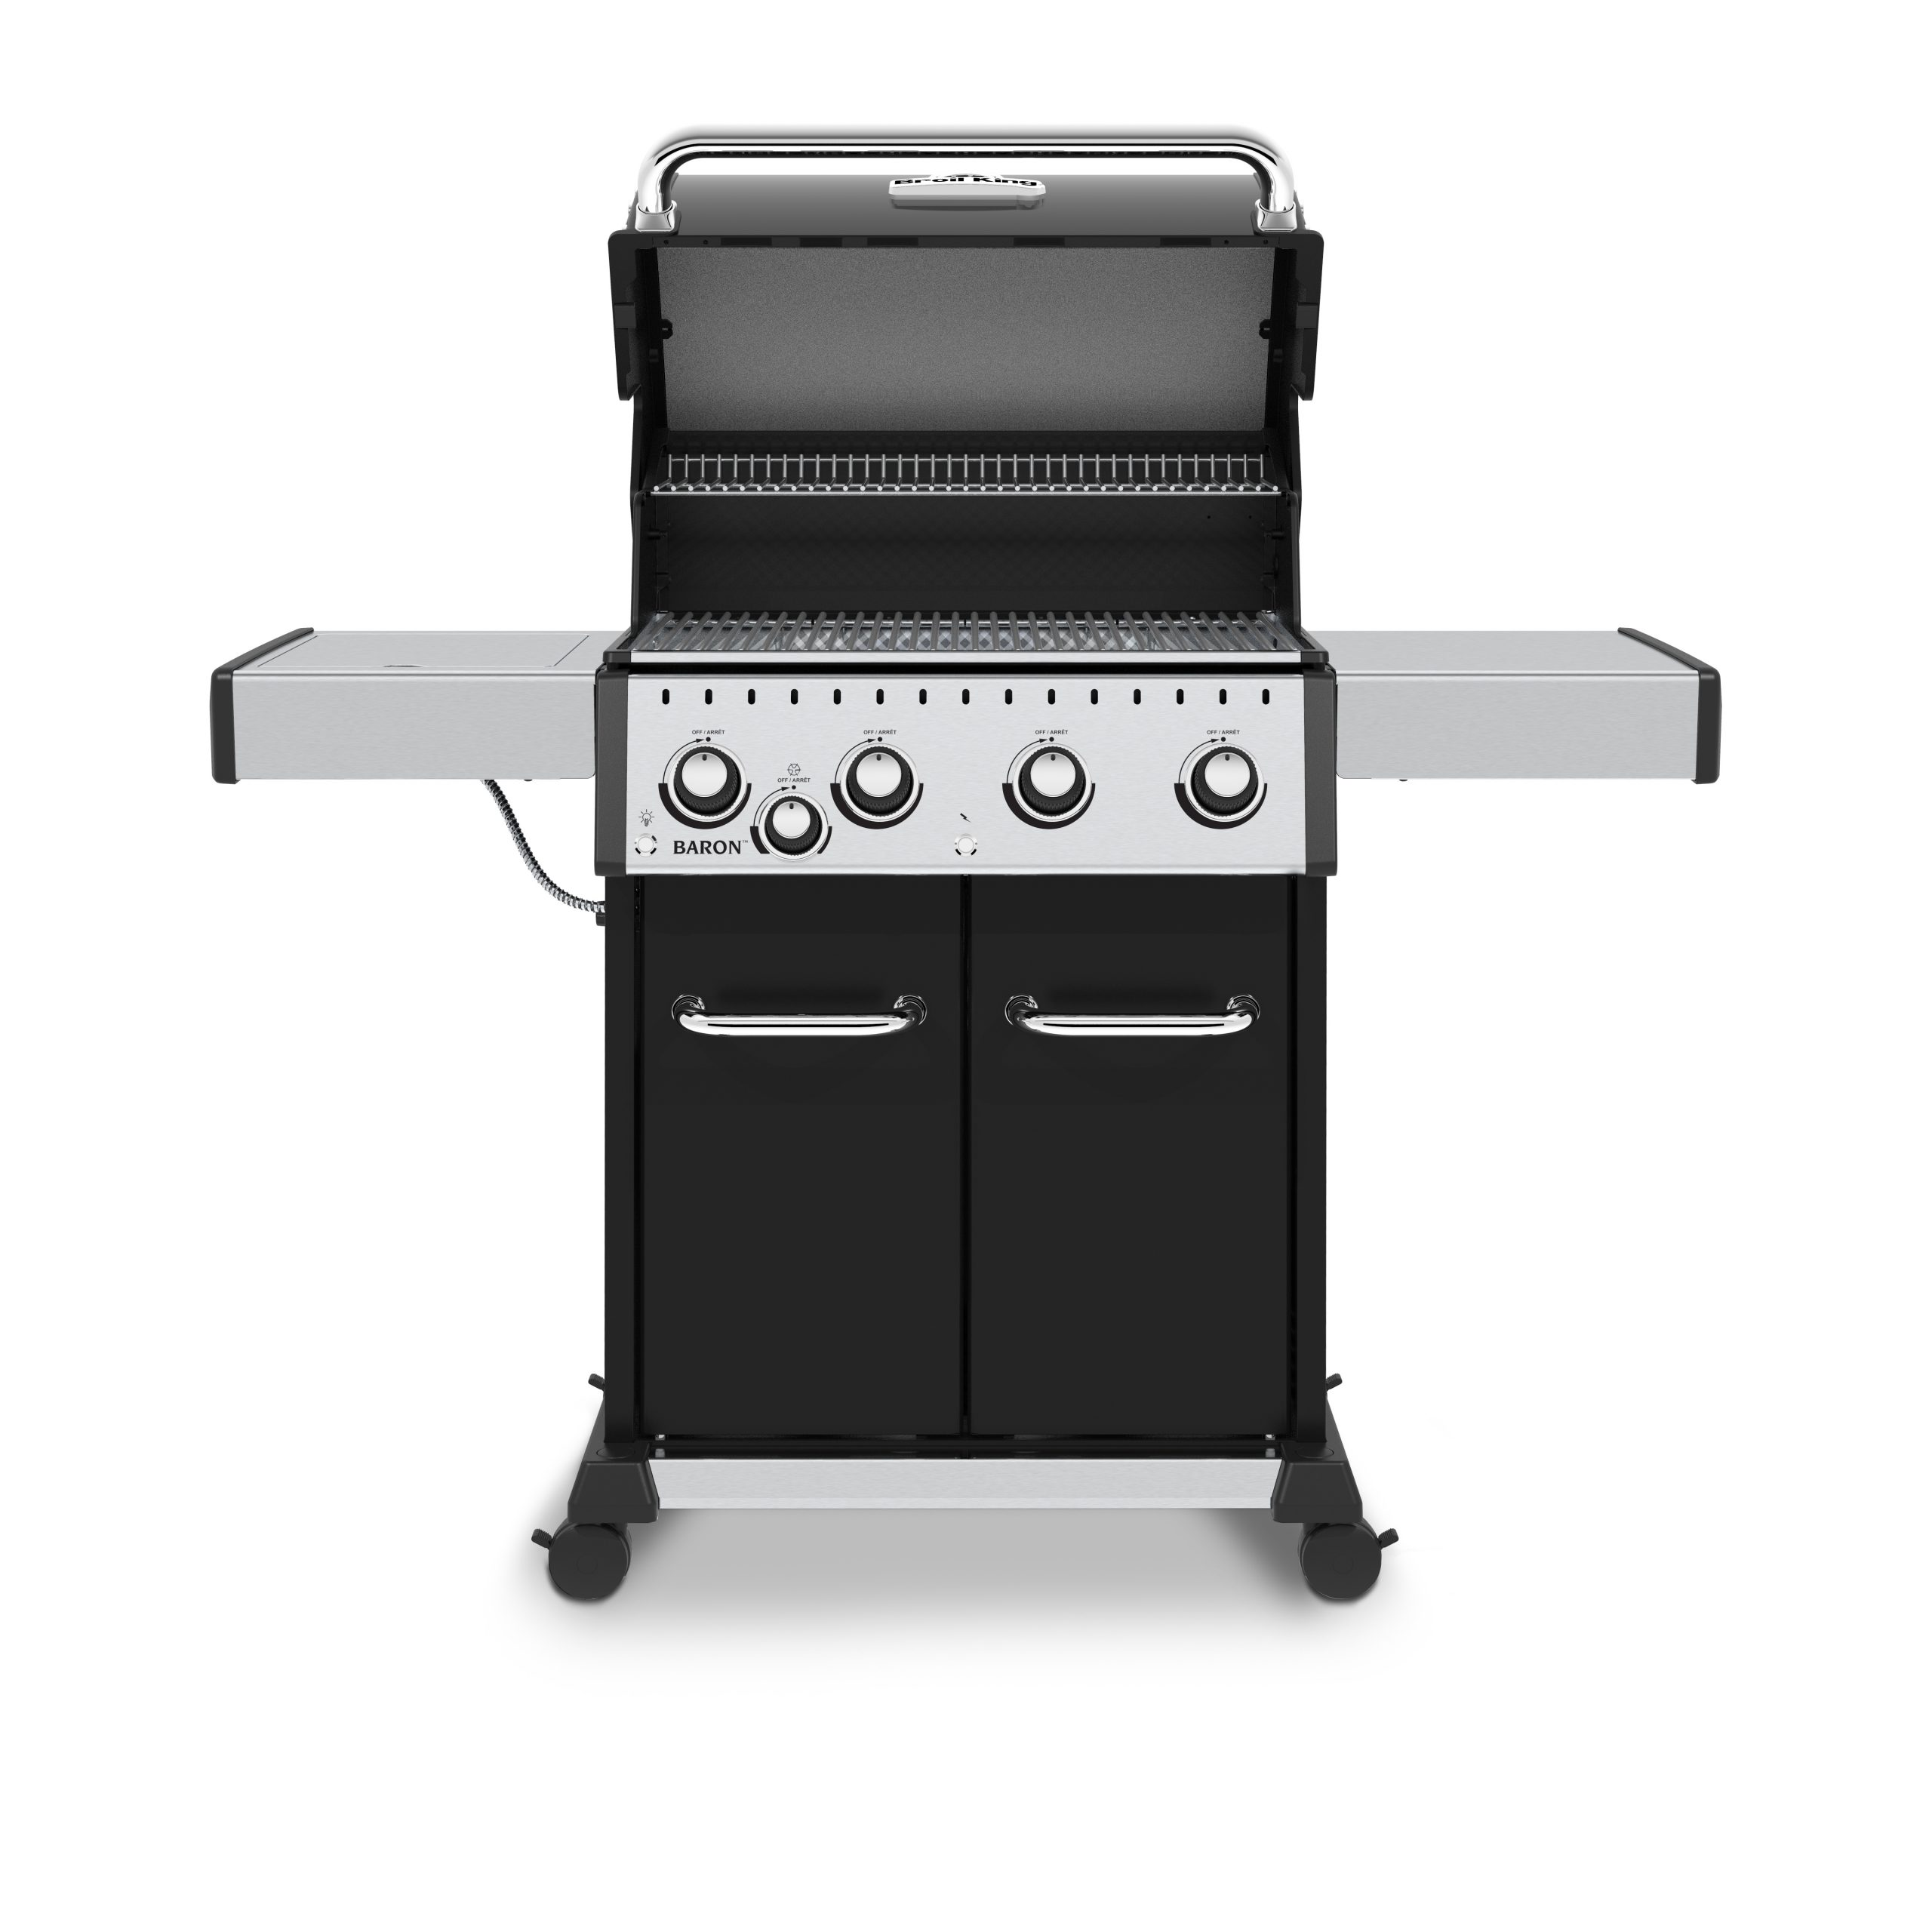 Broil King Baron Front facing with lid open